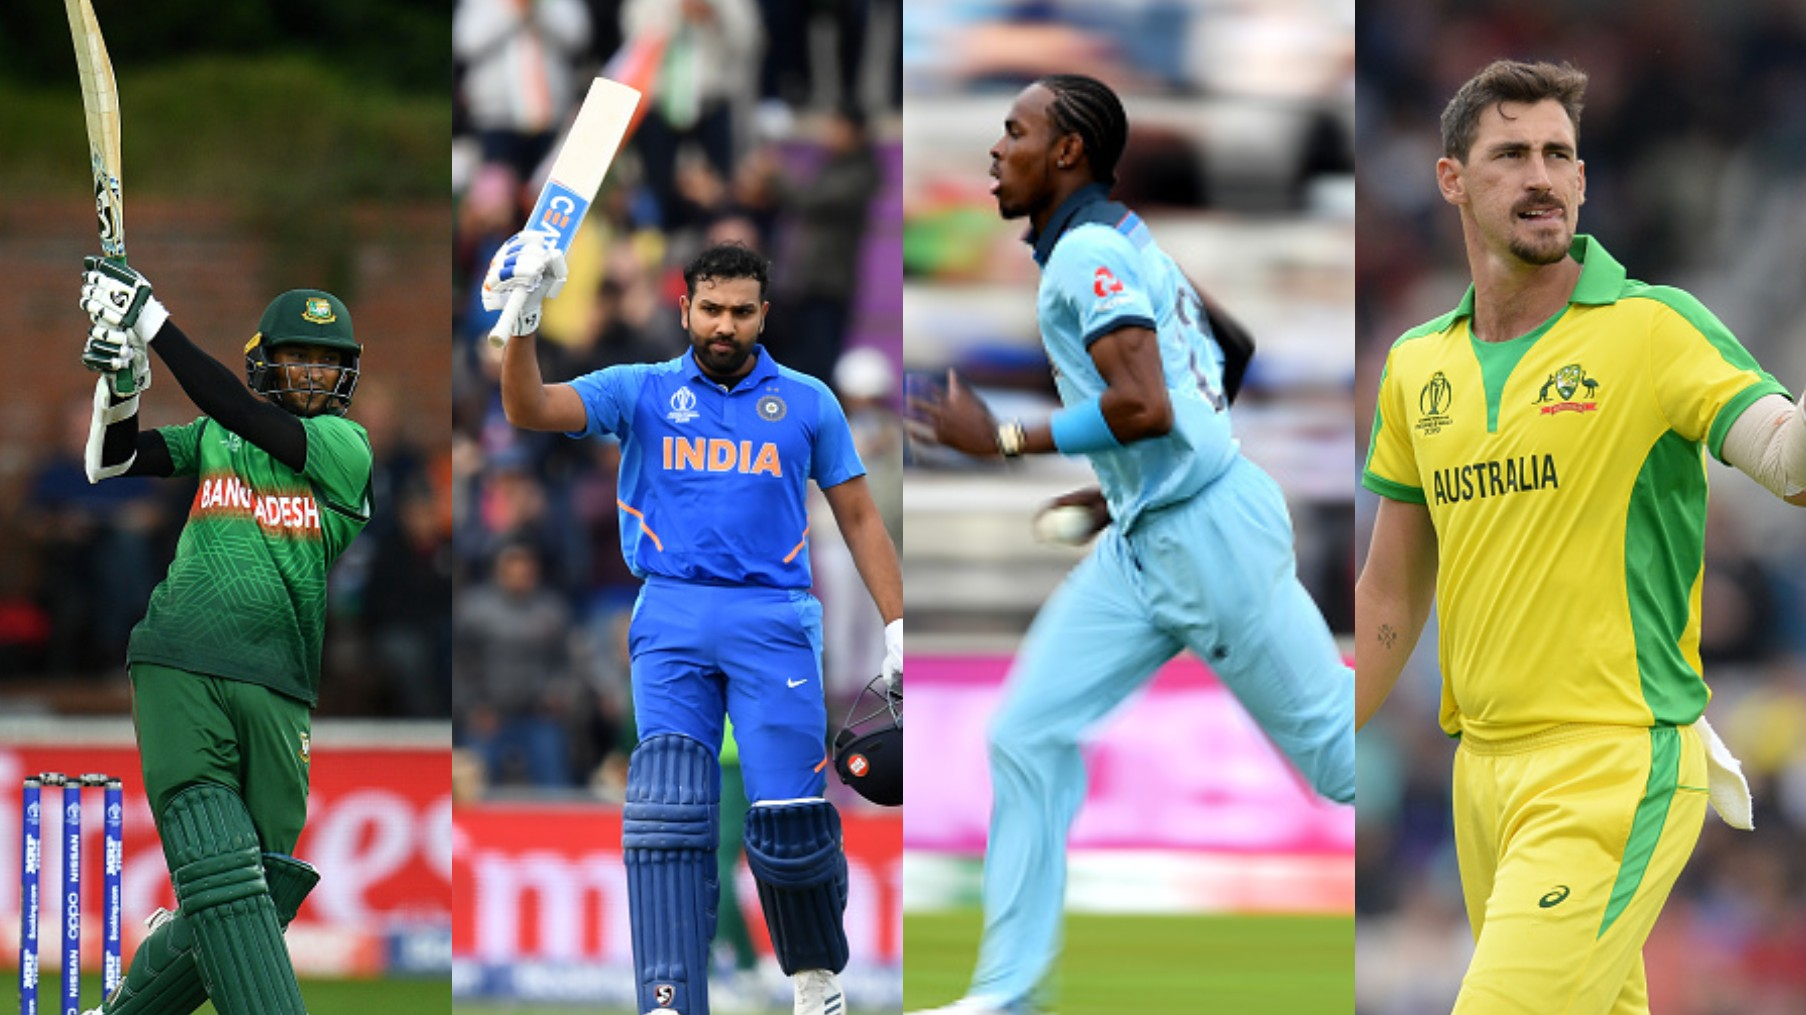 CWC 2019: COC mid-tournament XI of the ICC World Cup